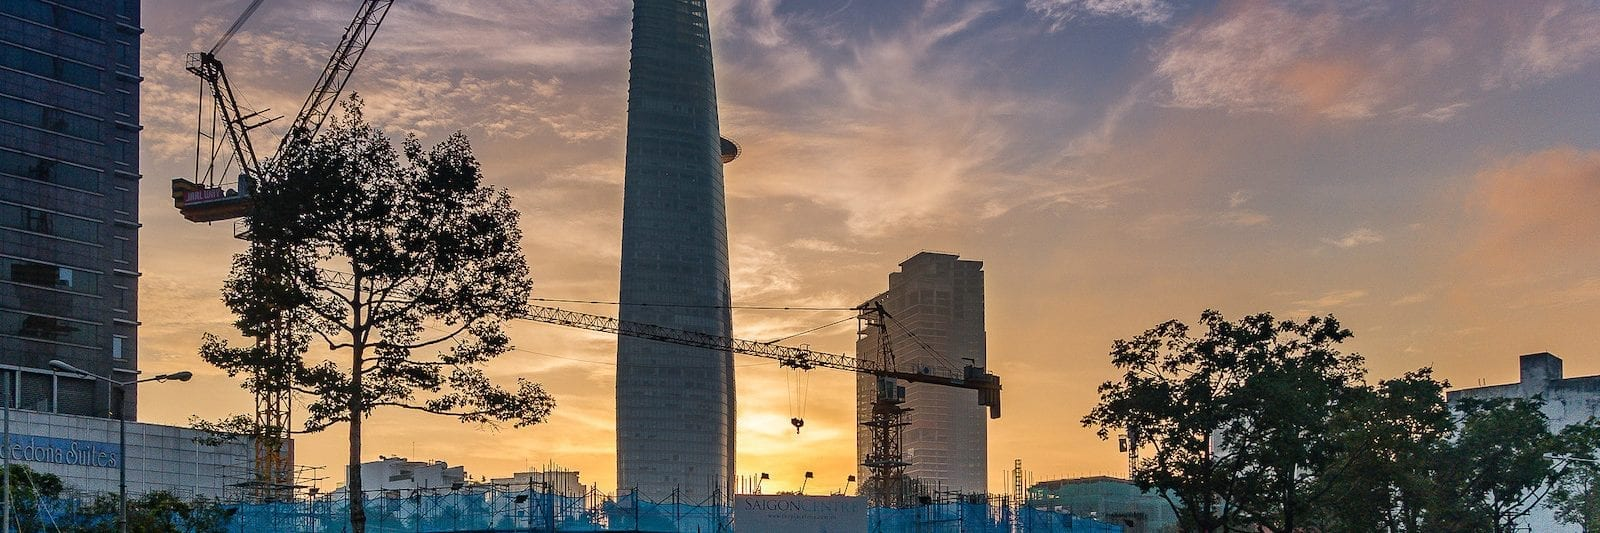 Sunrising behind the Bitexco Financial Tower, Saigon